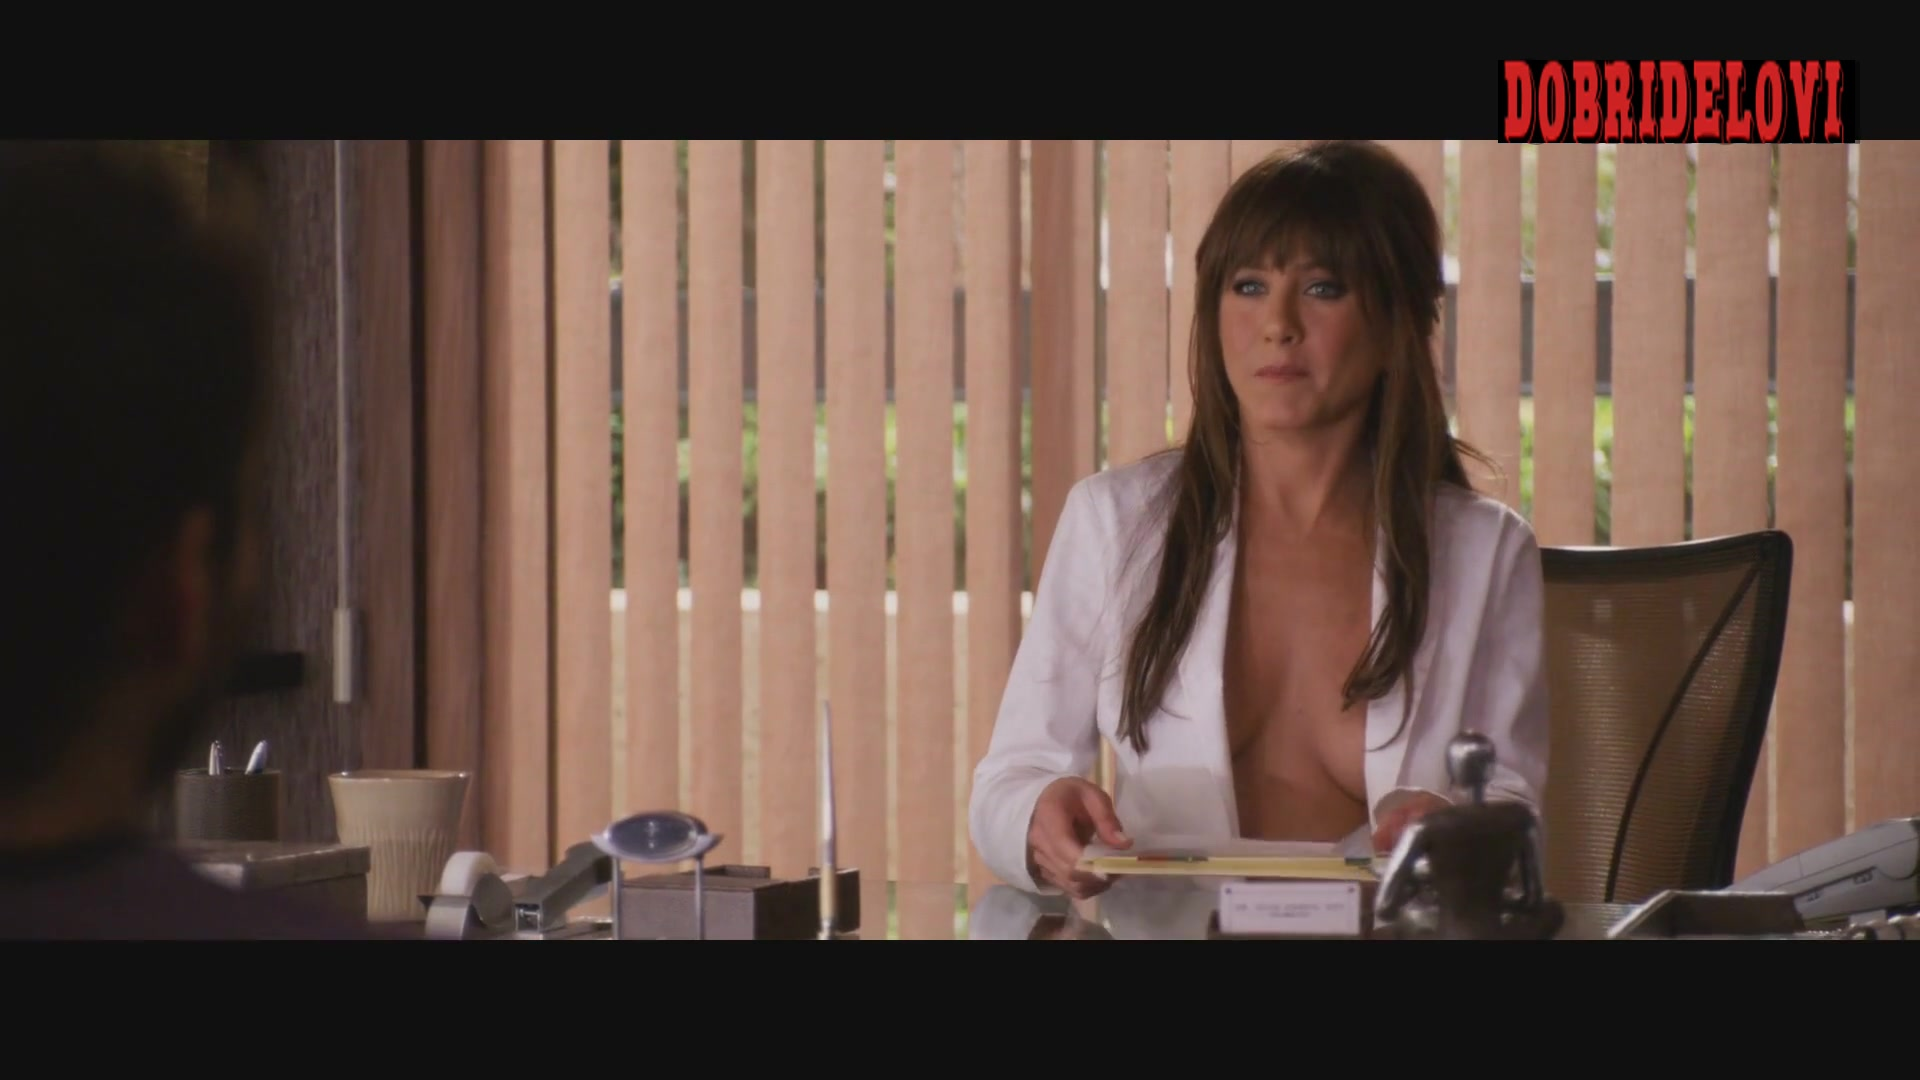 Jennifer Aniston no shirt in doctor's office scene from Horrible Bosses